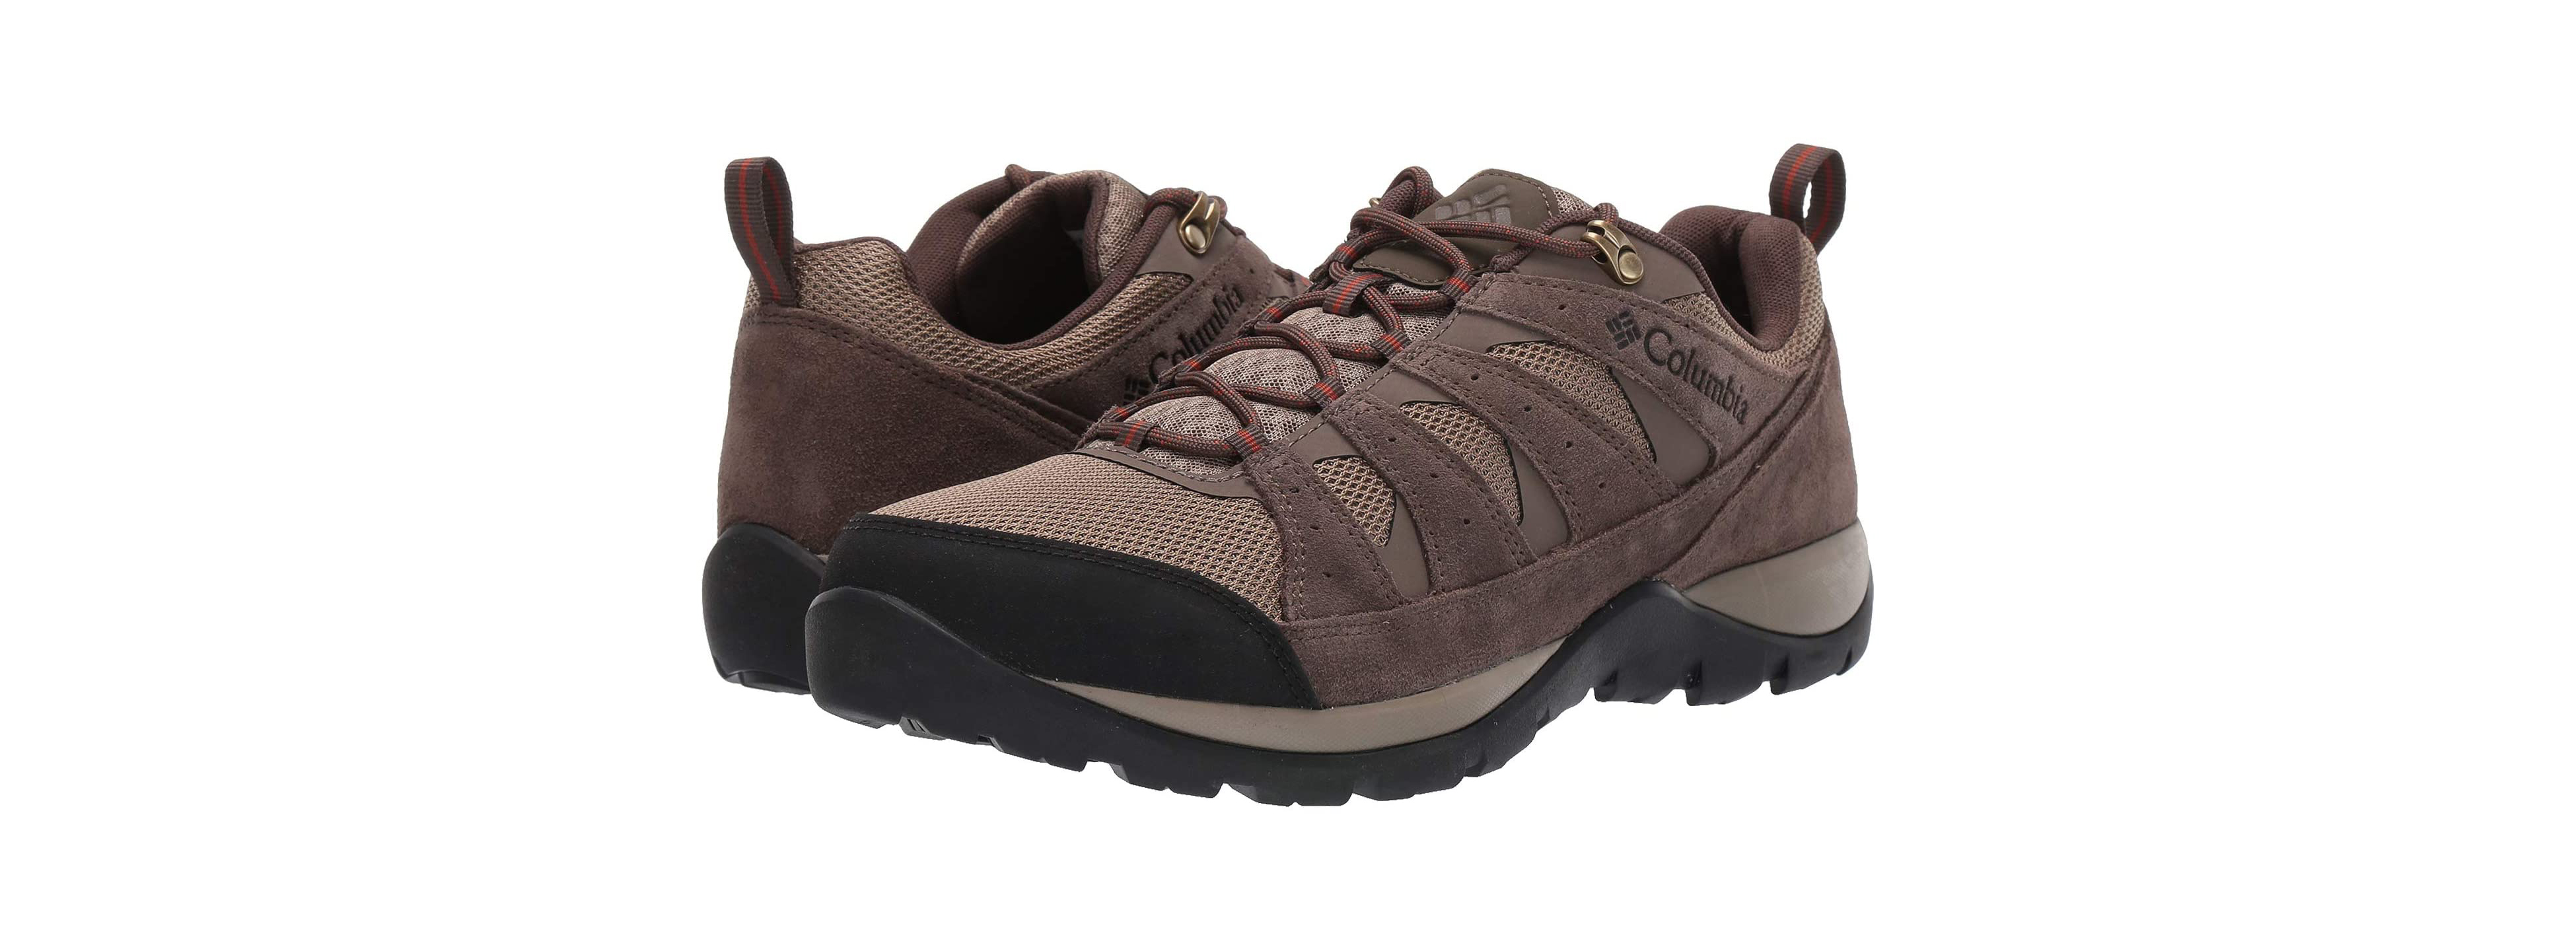 Hit The Trails With These Hiking Shoes